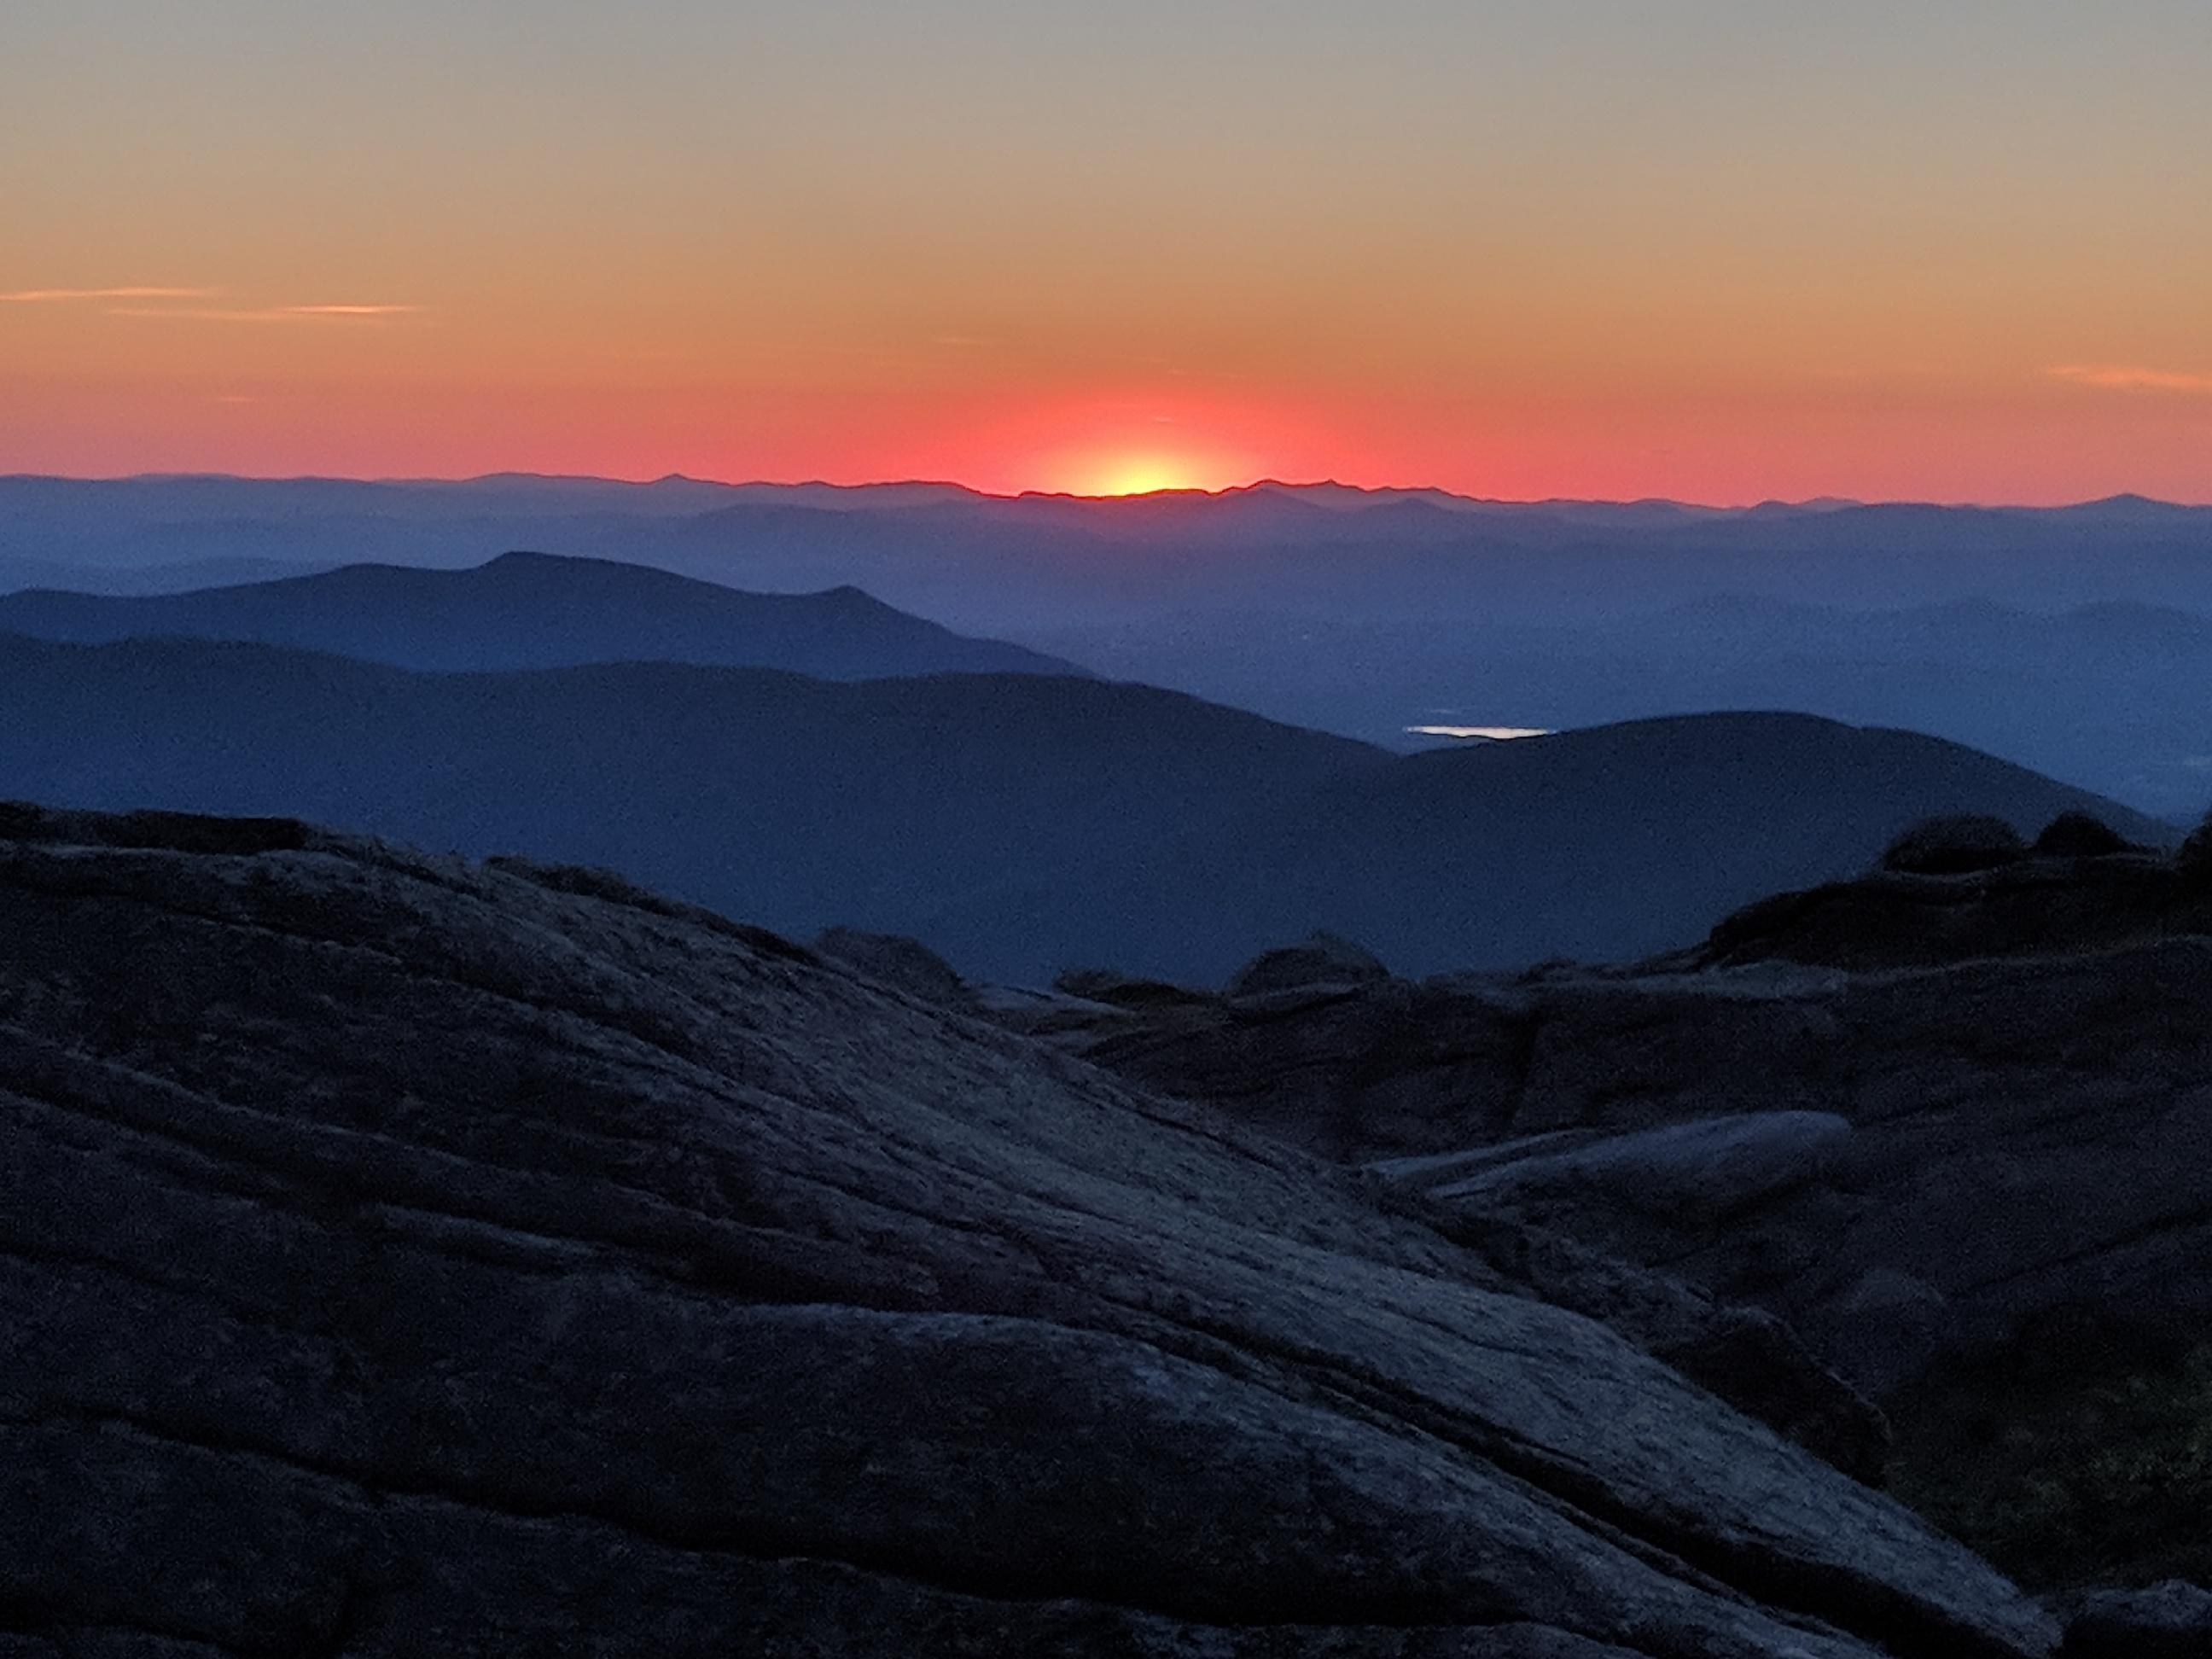 Sunset from Lakes of the Clouds hut.